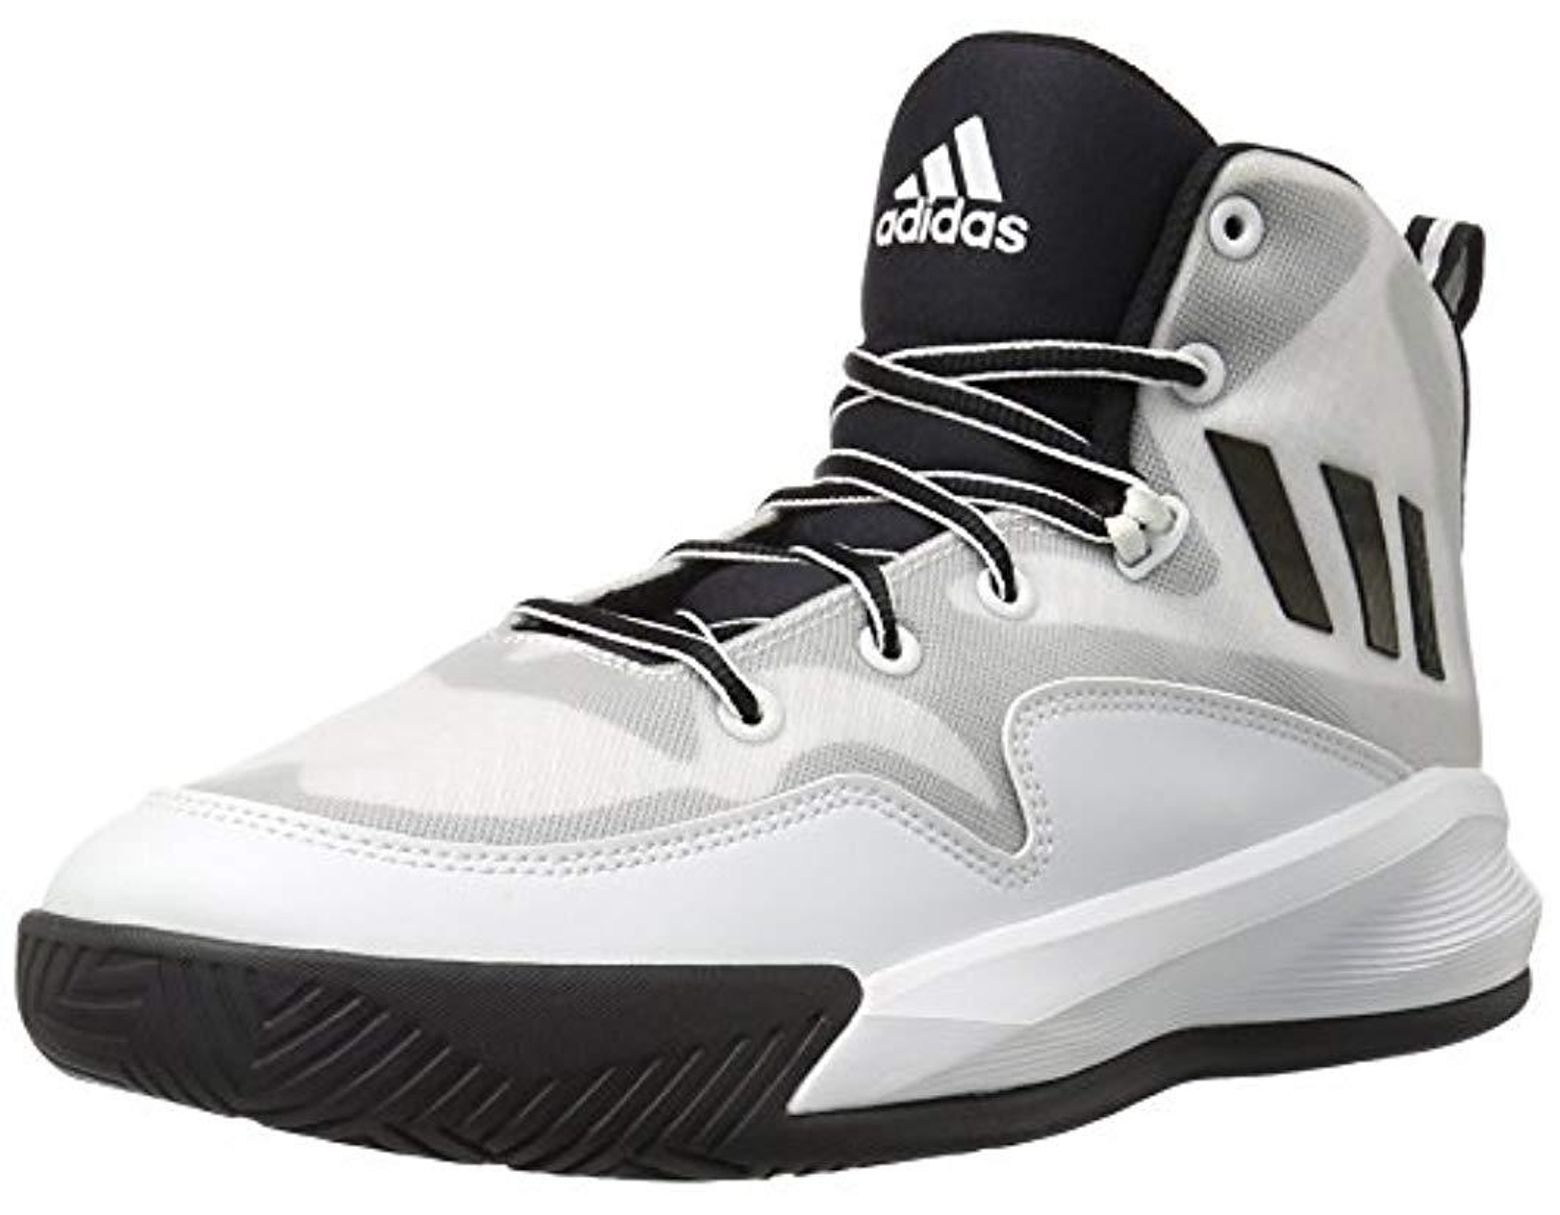 a999999a66c Lyst - adidas Performance Crazy Eruption Basketball Shoe in White for Men -  Save 29%